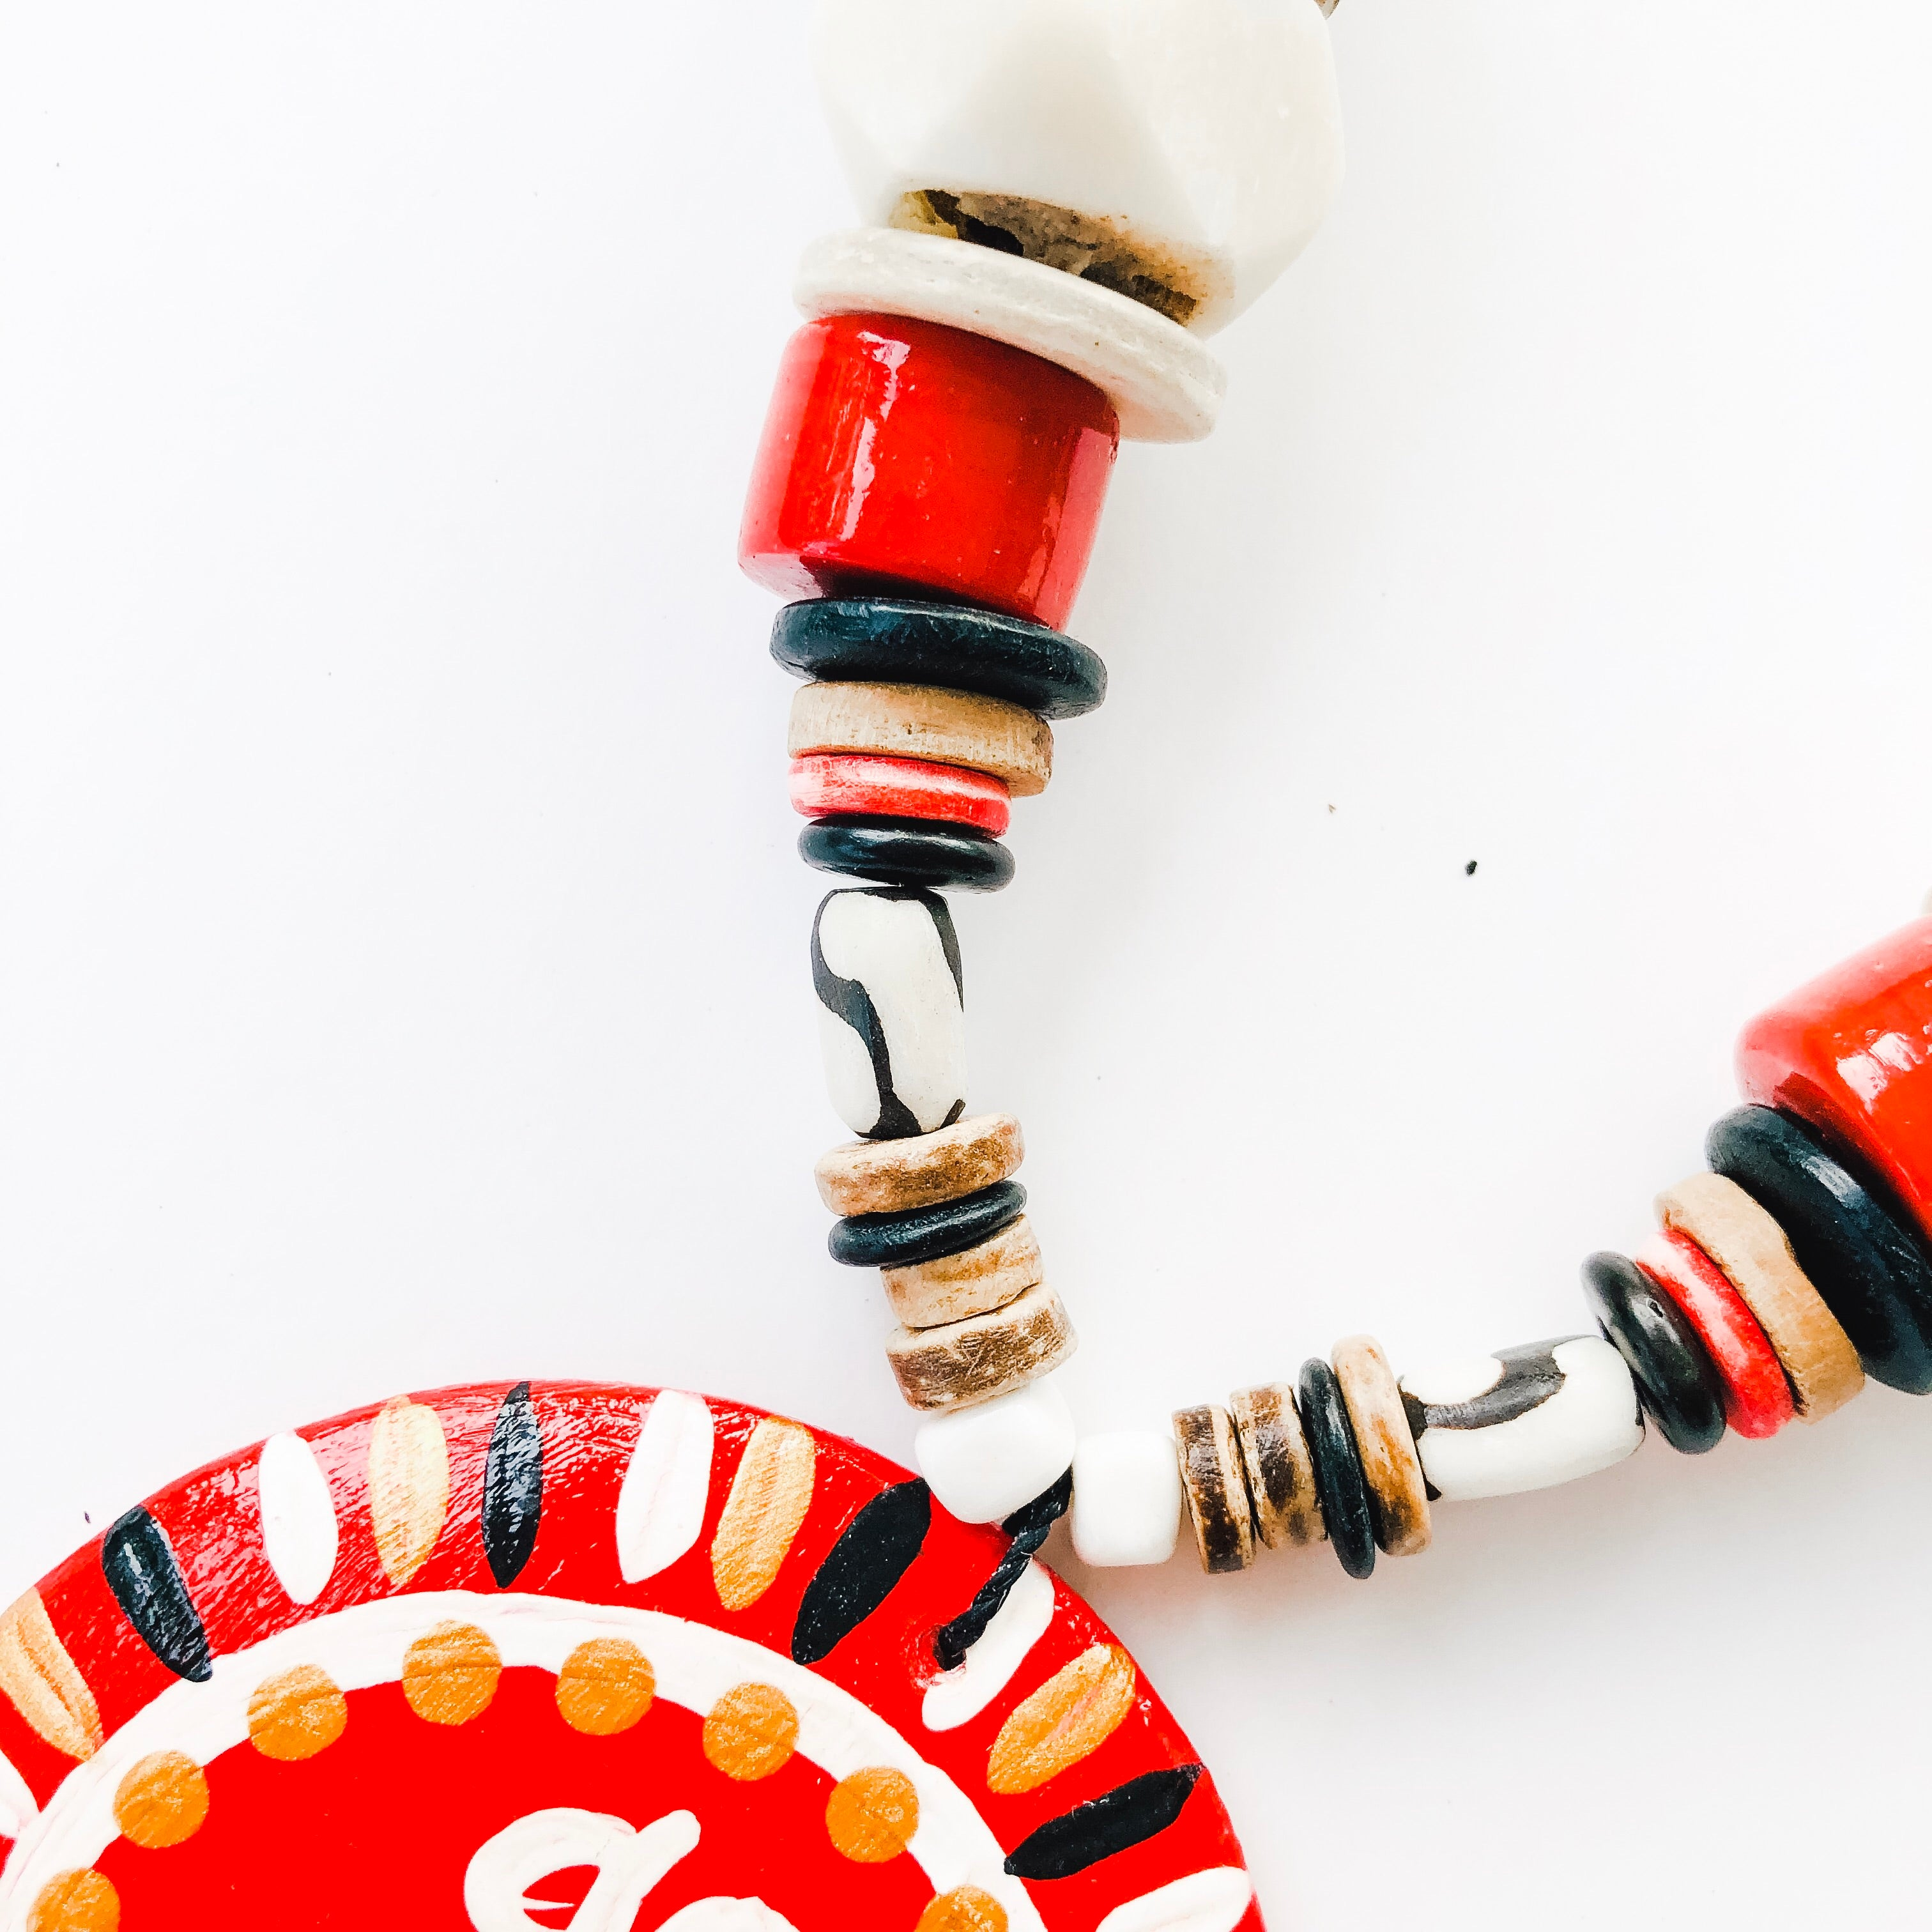 Game Day Tailgate Azalea Necklace - Go Pack